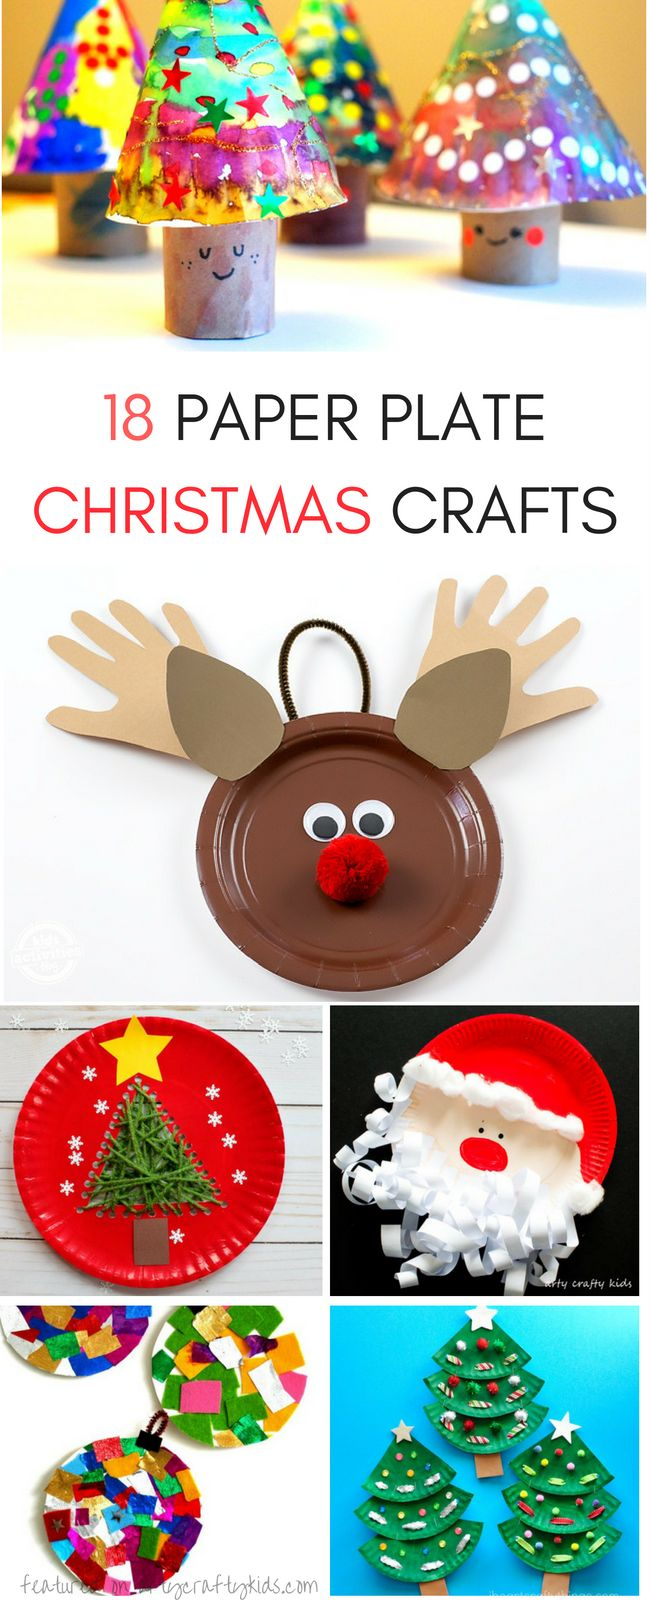 Fabulous Paper Plate Christmas Crafts